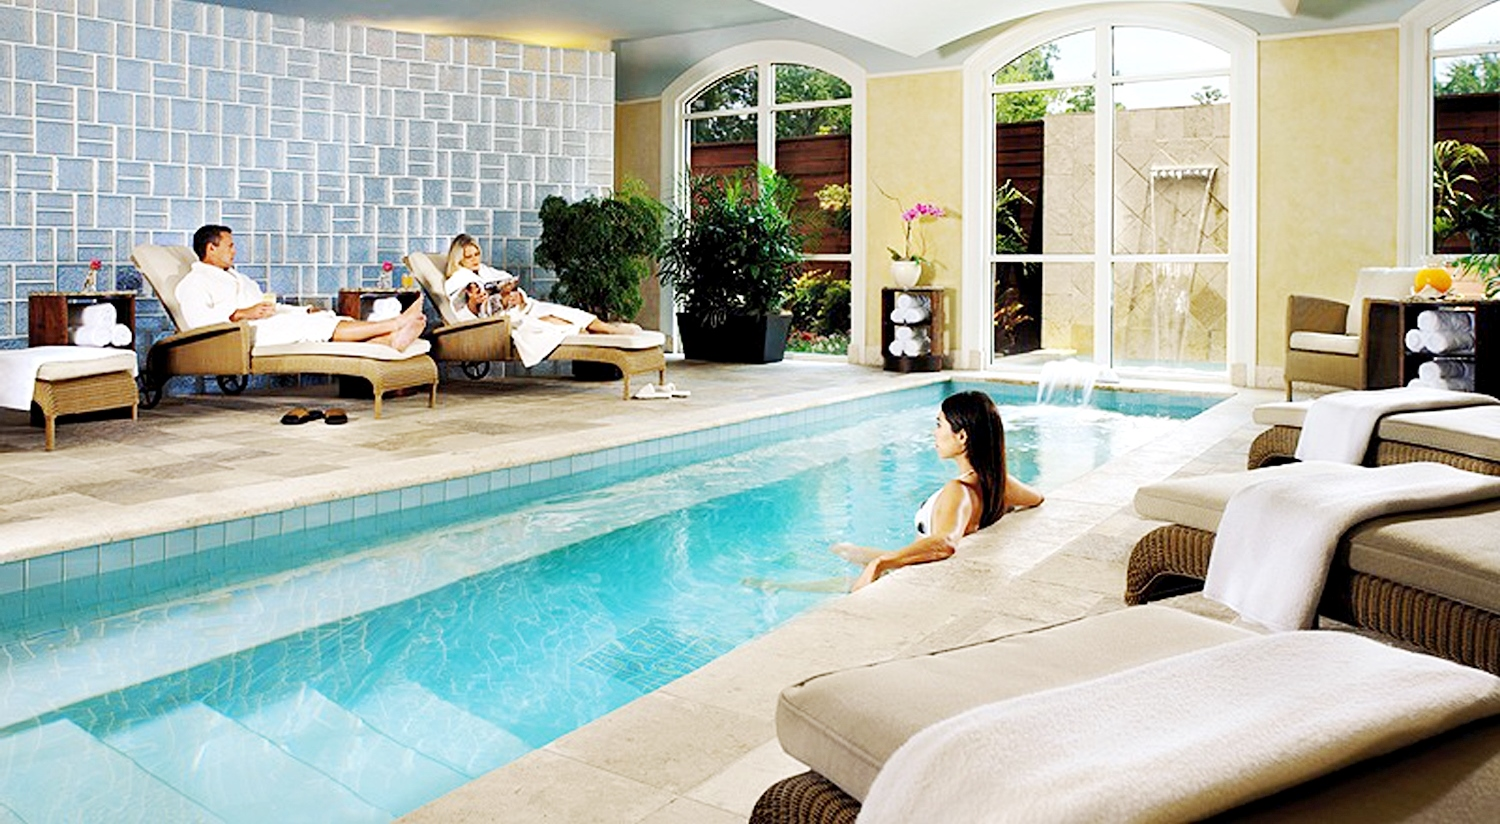 Romantic Pool Ideas Romantic Weekend In Houston Find Trip Ideas Couples Activities